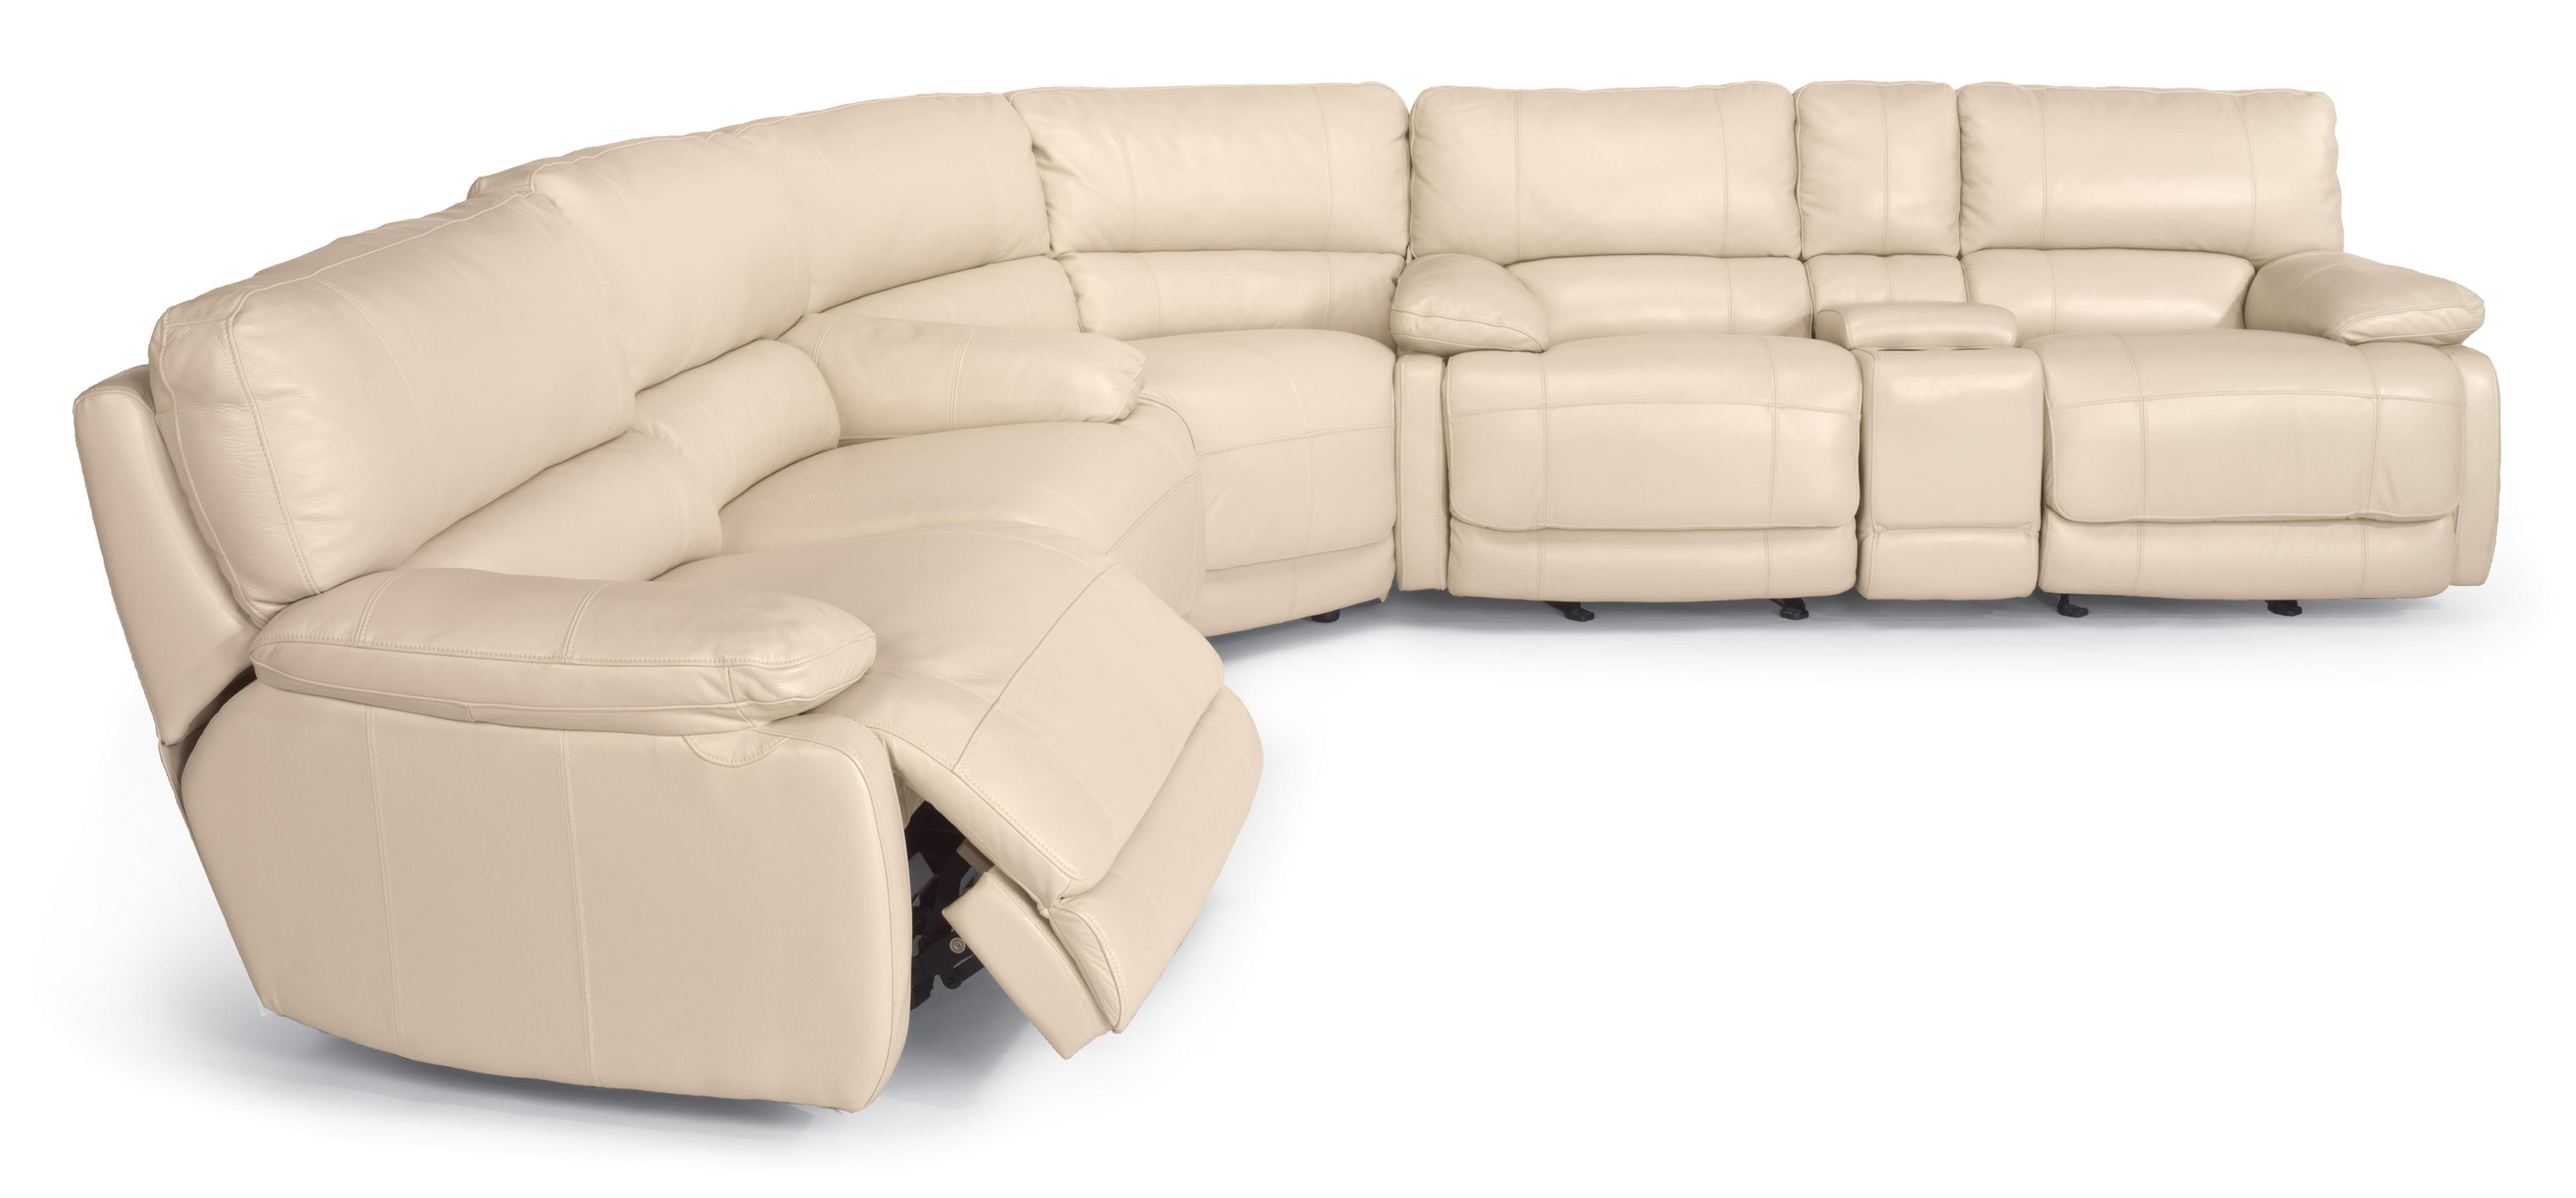 and sectional easily rc sofa reclining recliner english cheap small in lots com with willey as well big best awesome almosthomedogdaycare sectionals www leather